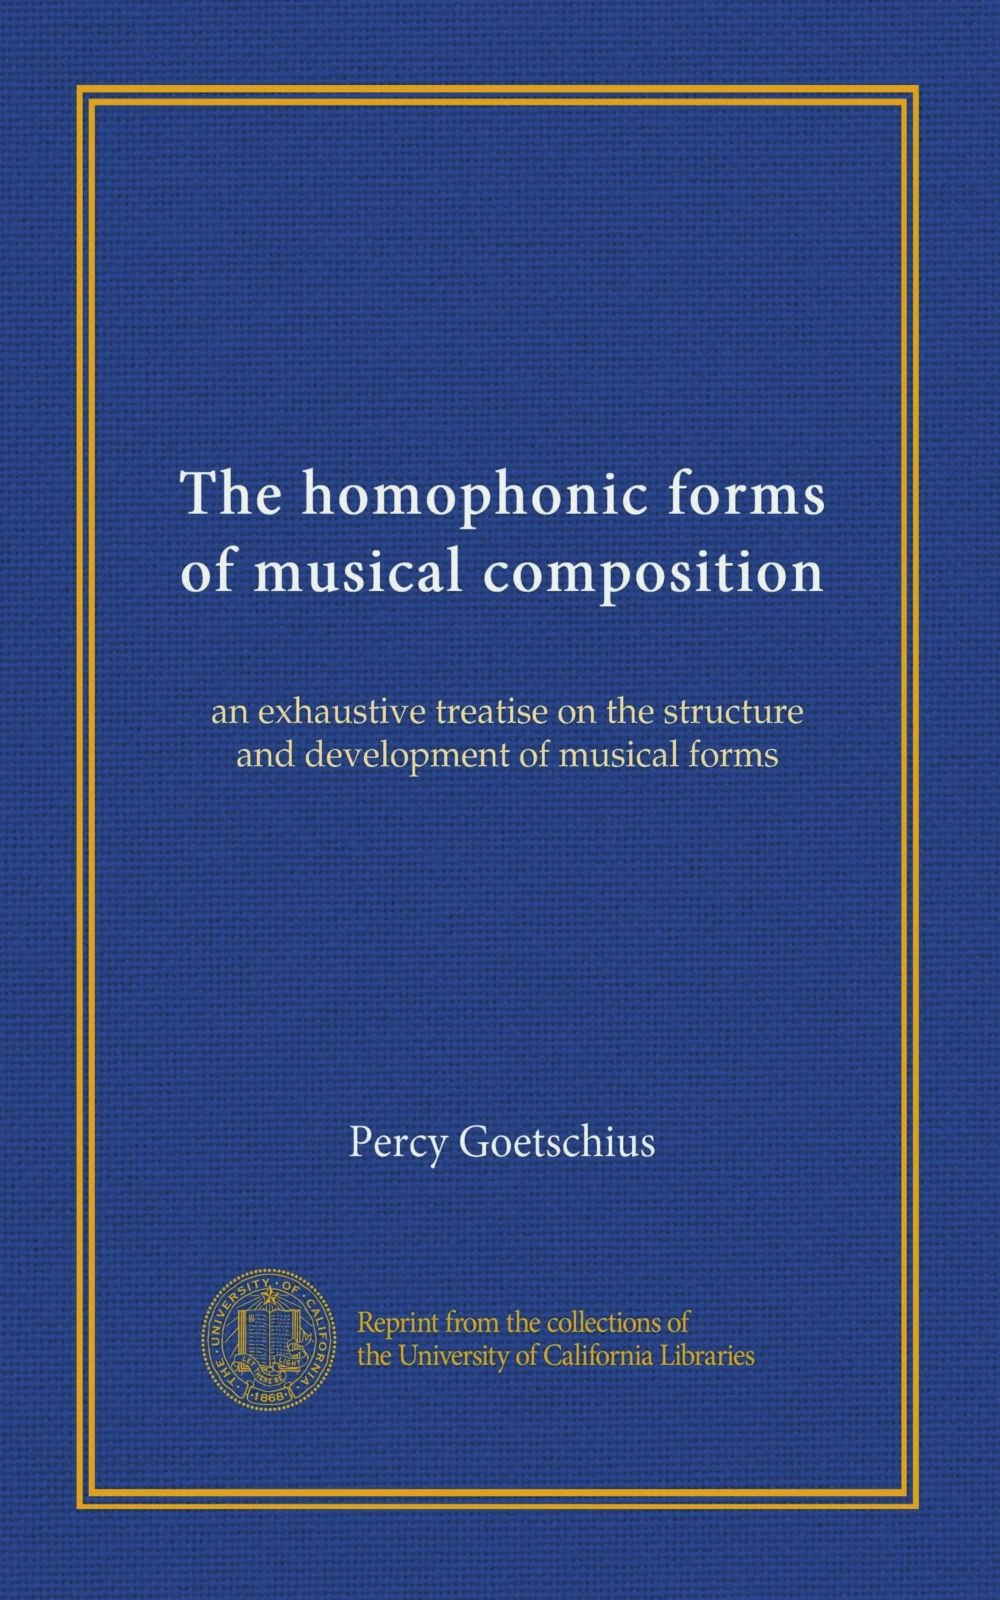 Download The homophonic forms of musical composition: an exhaustive treatise on the structure and development of musical forms ebook